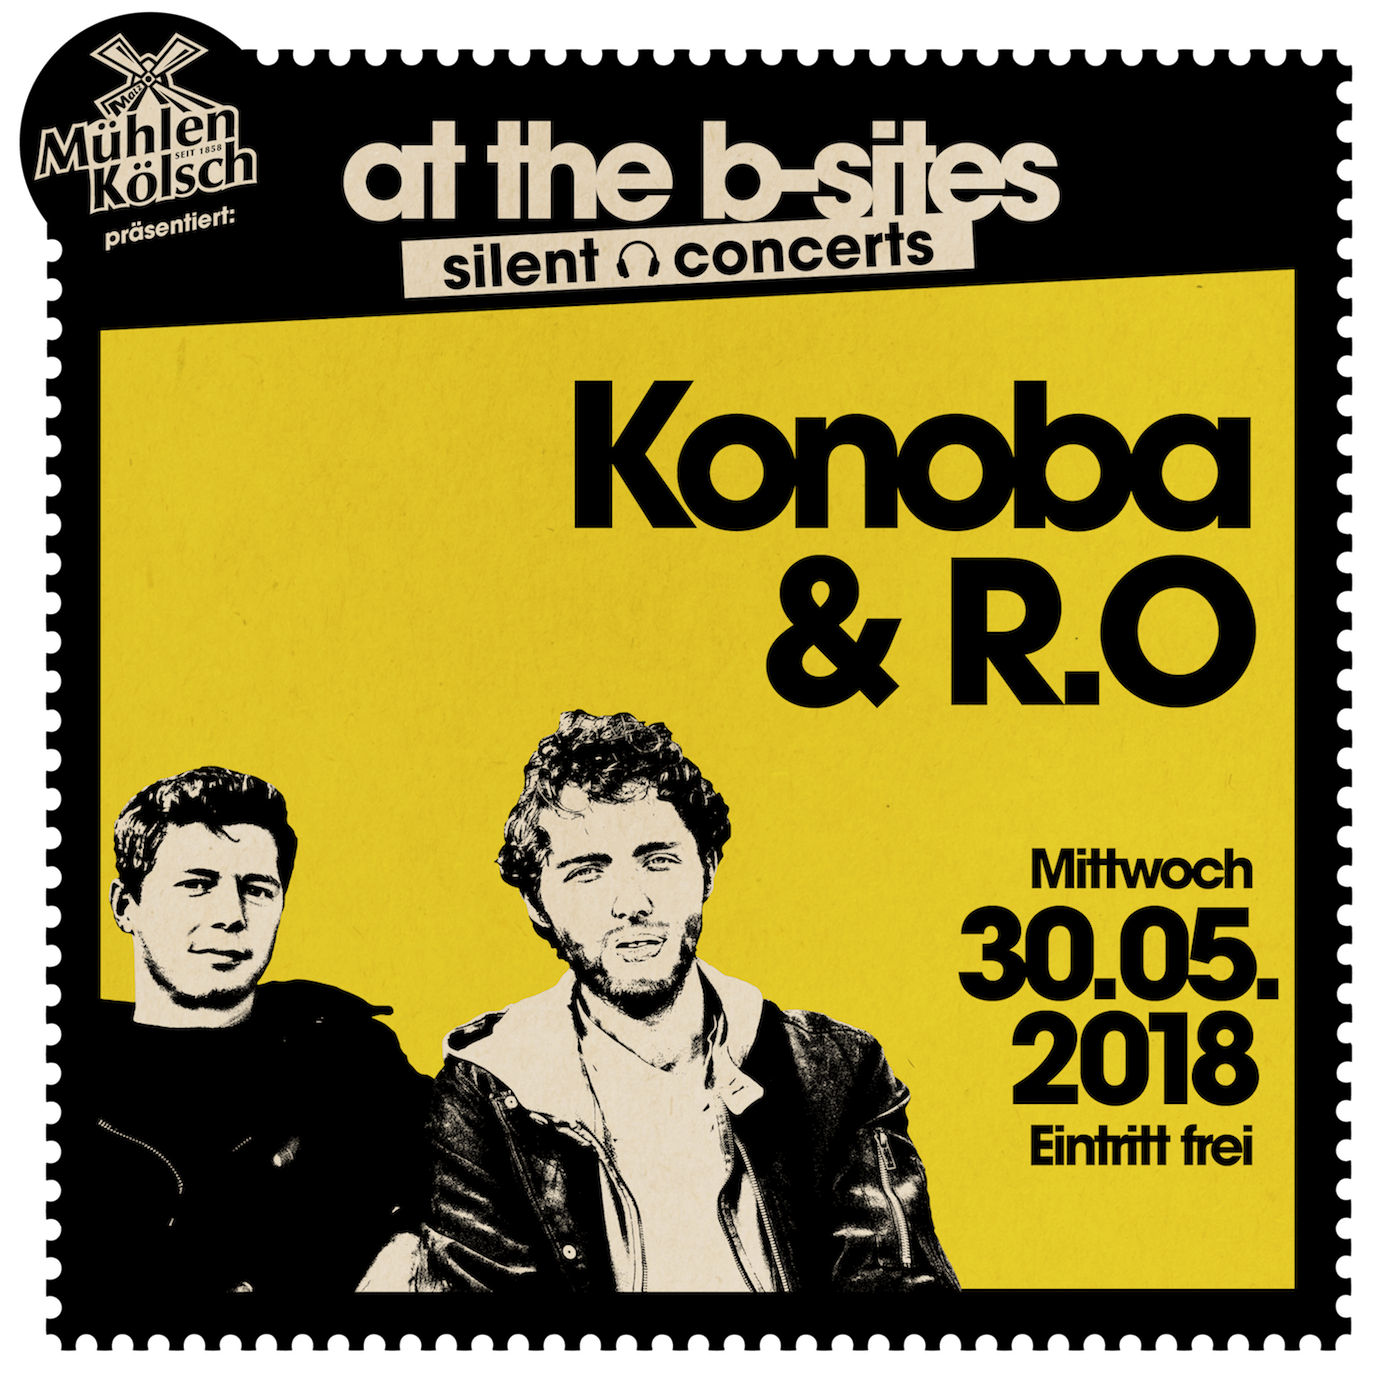 konoba ro at the b-sites